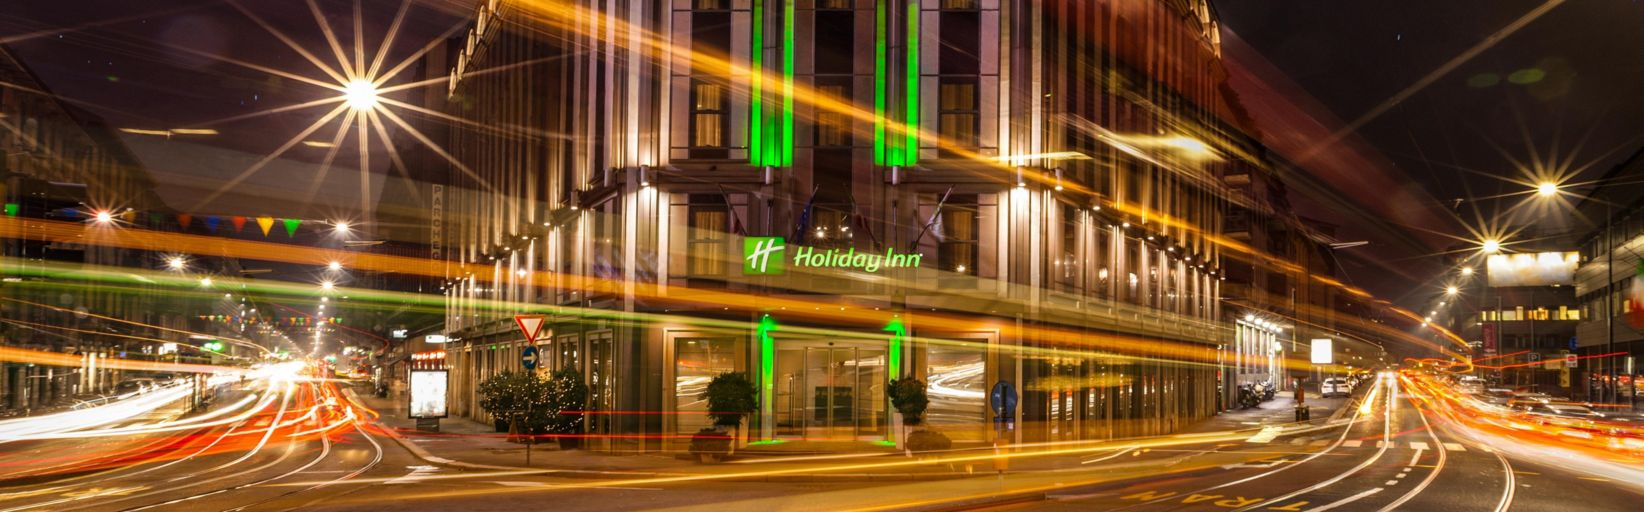 Holiday Inn Milan Garibaldi Station Hotel By Ihg Welcome To